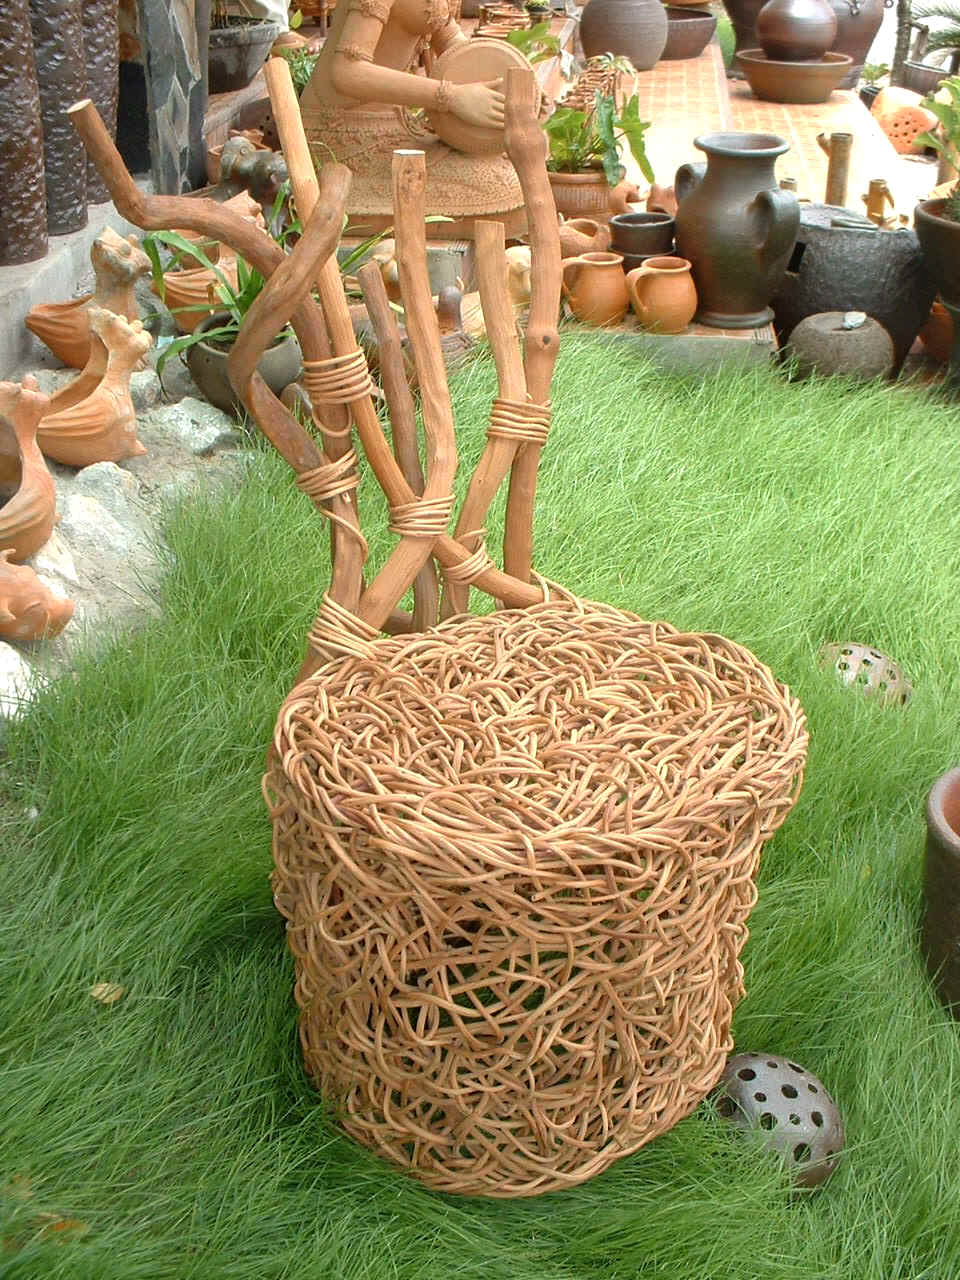 co9 vine rattan furniture by nongnit 39 s treasures